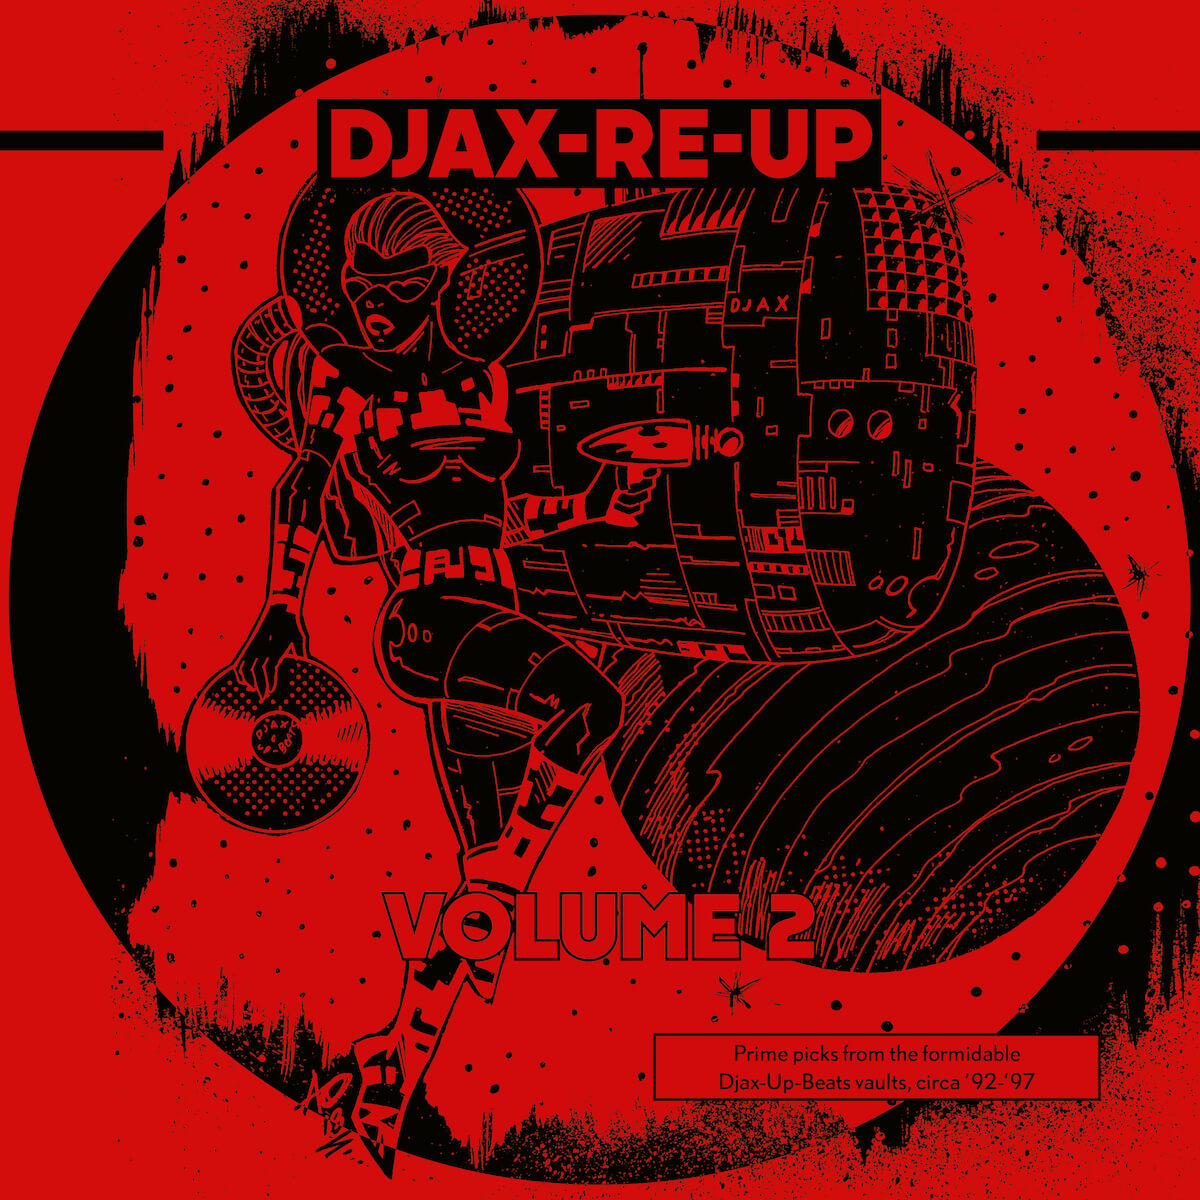 Djax Re Up Volume 2